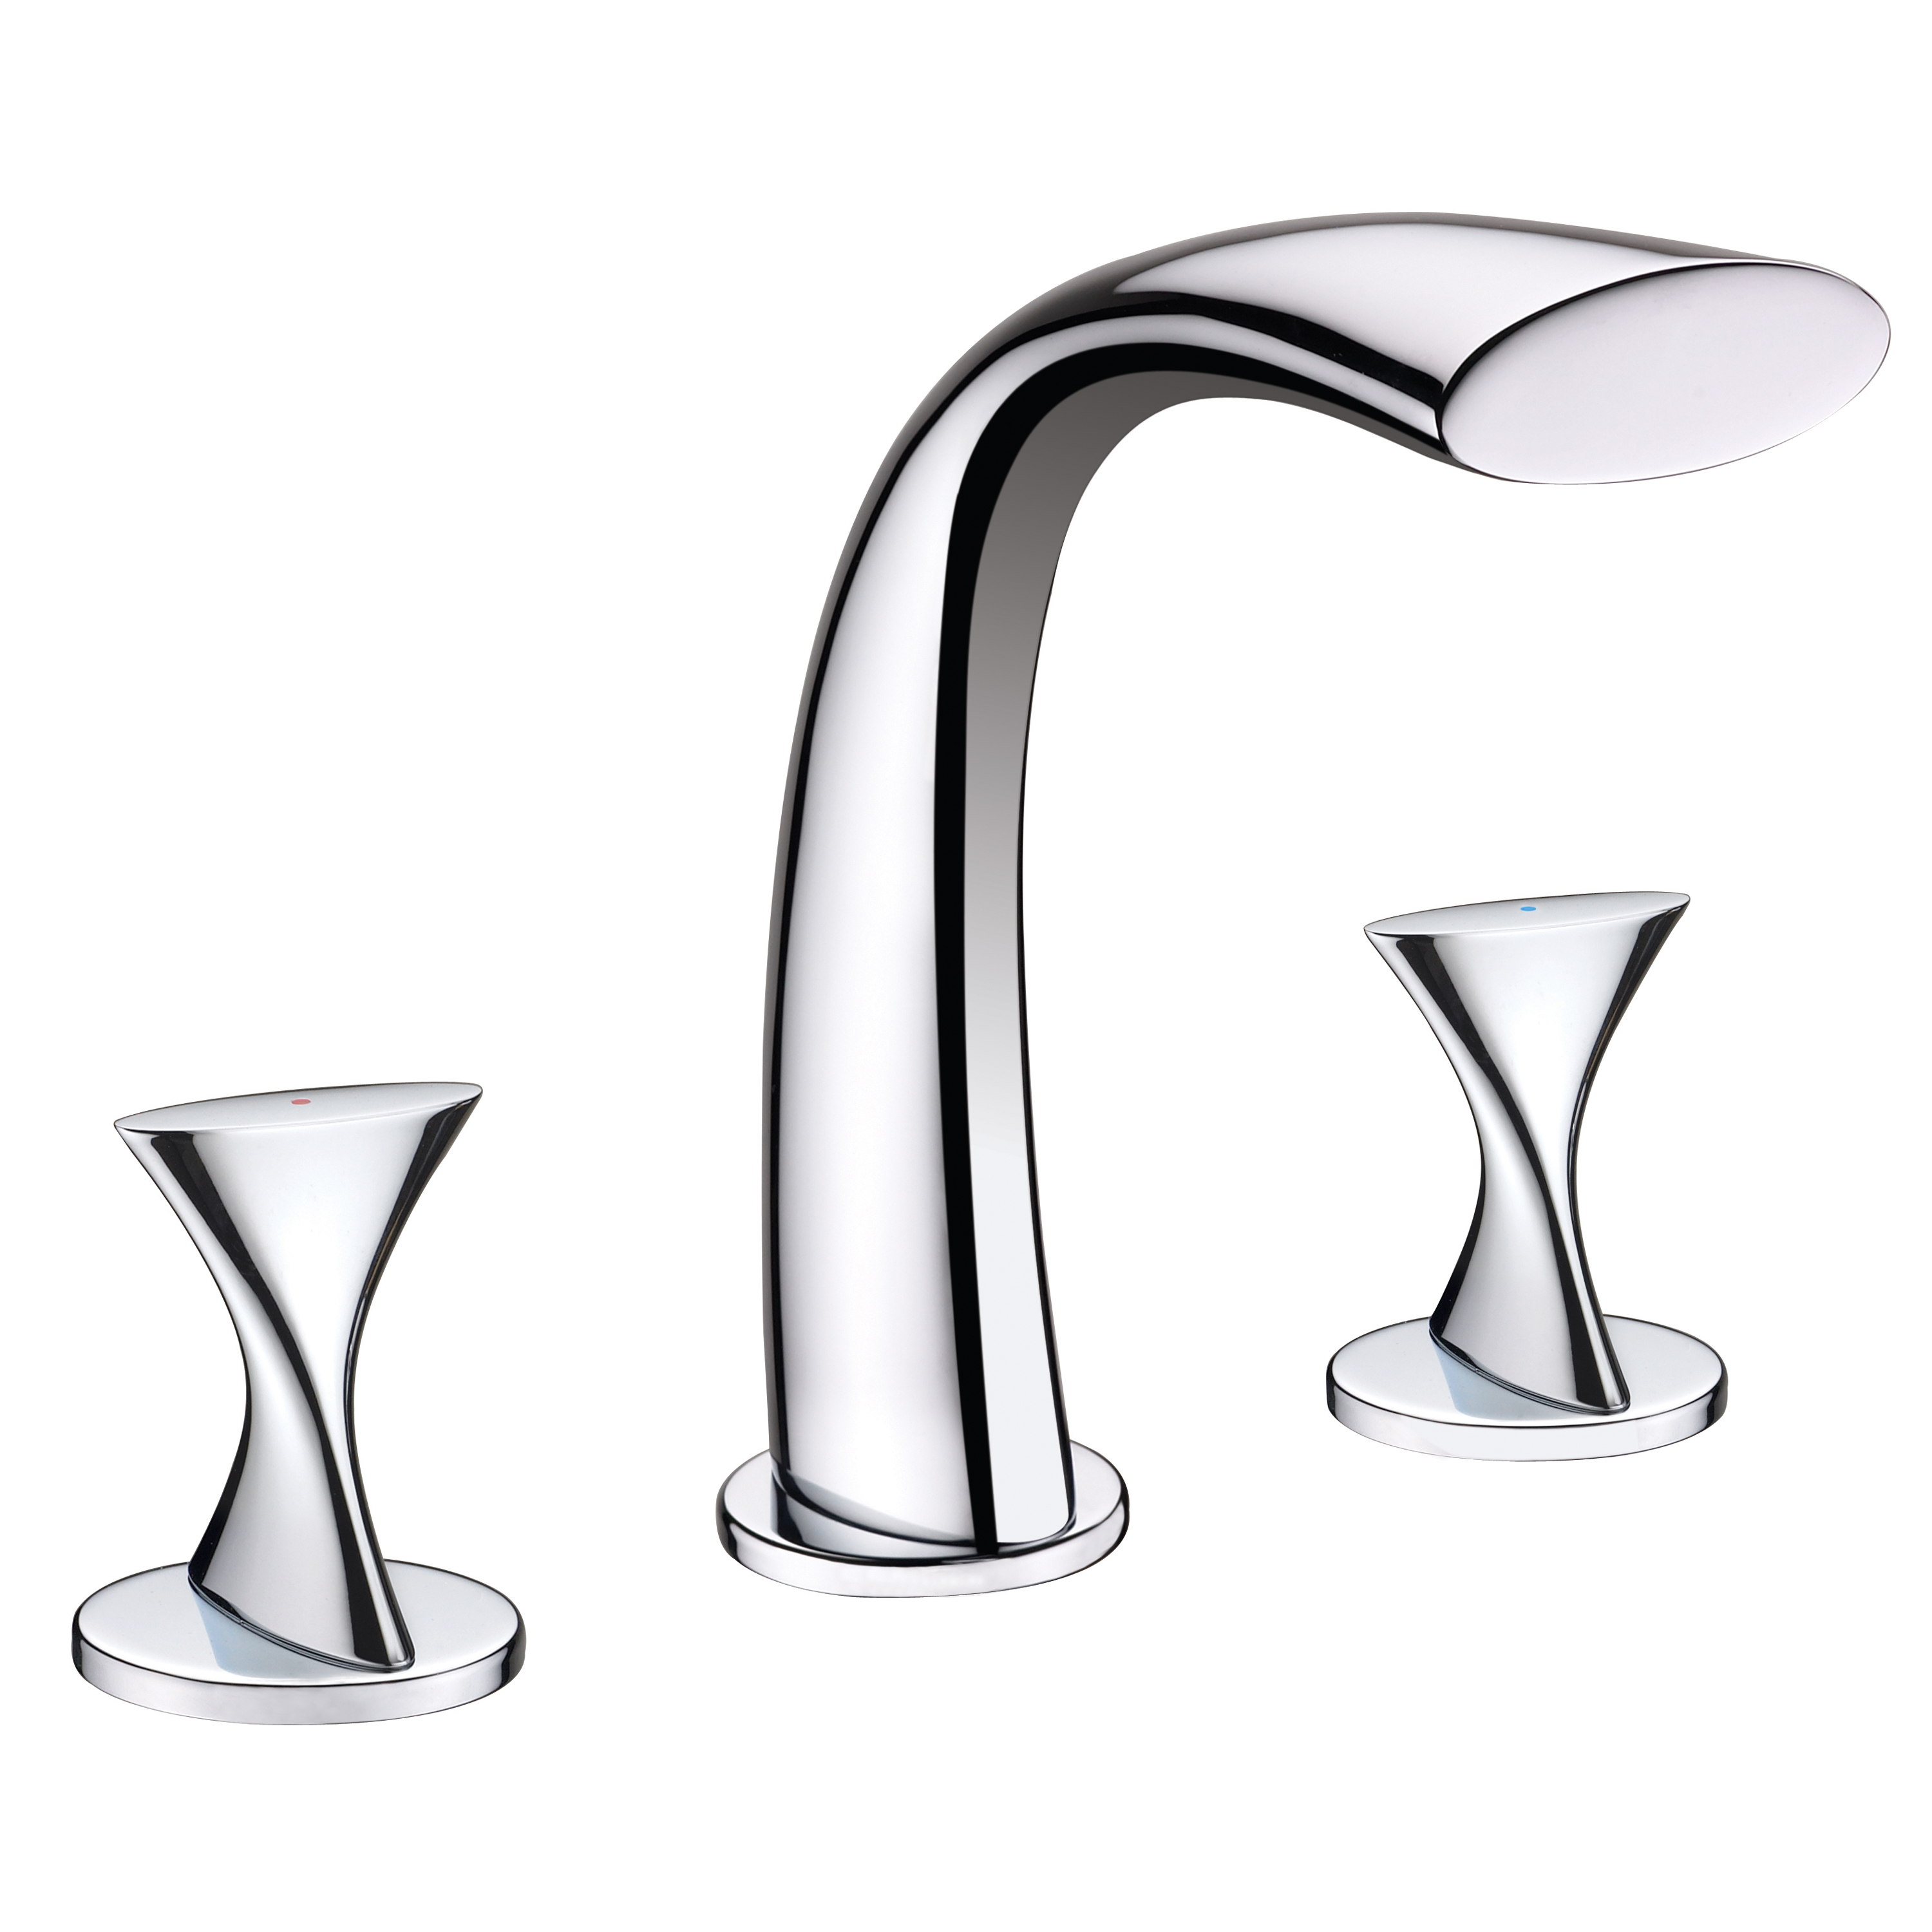 Twist Collection Roman Tub Faucet Ultra Faucets